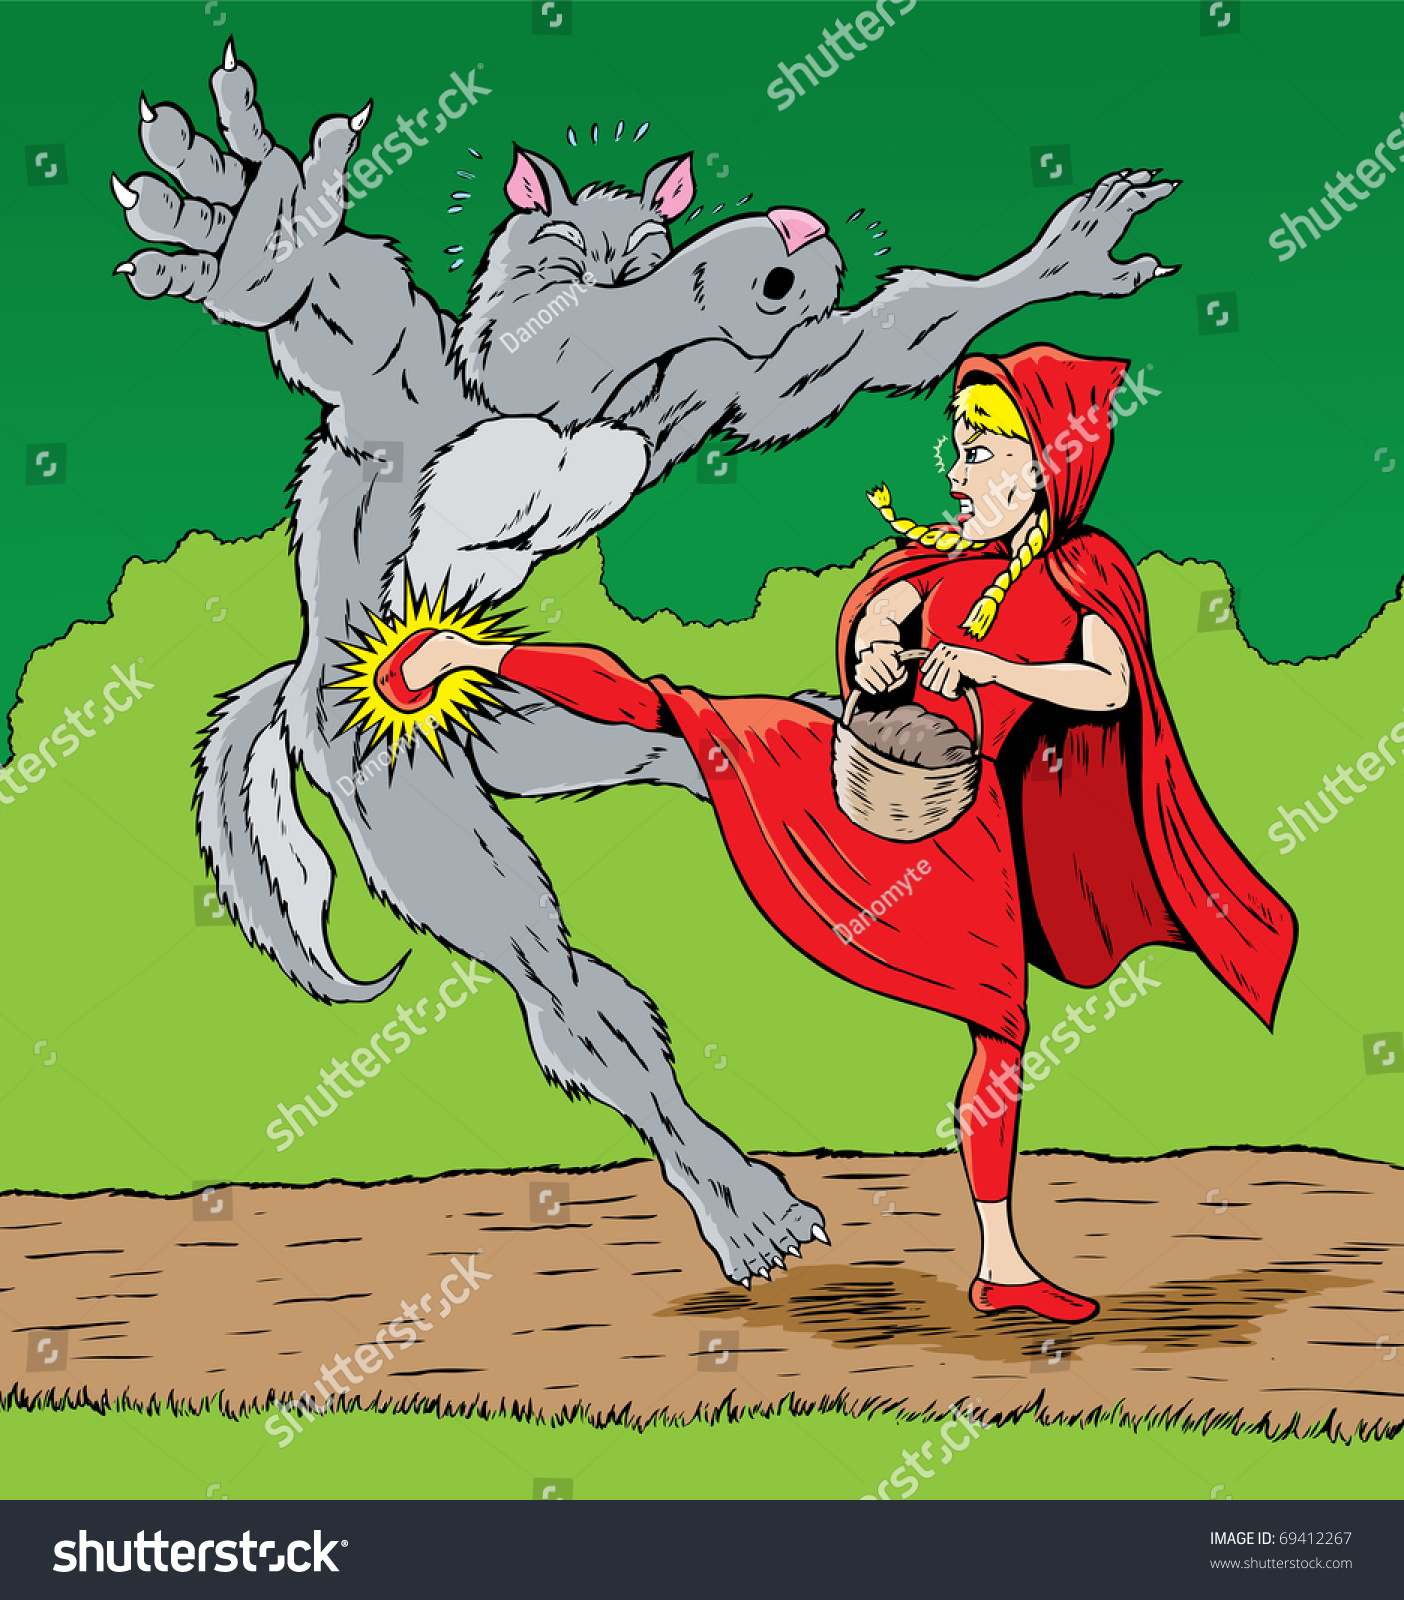 Little red riding hood kicking wolf stock illustration 69412267 little red riding hood kicking the wolf good for self defense buycottarizona